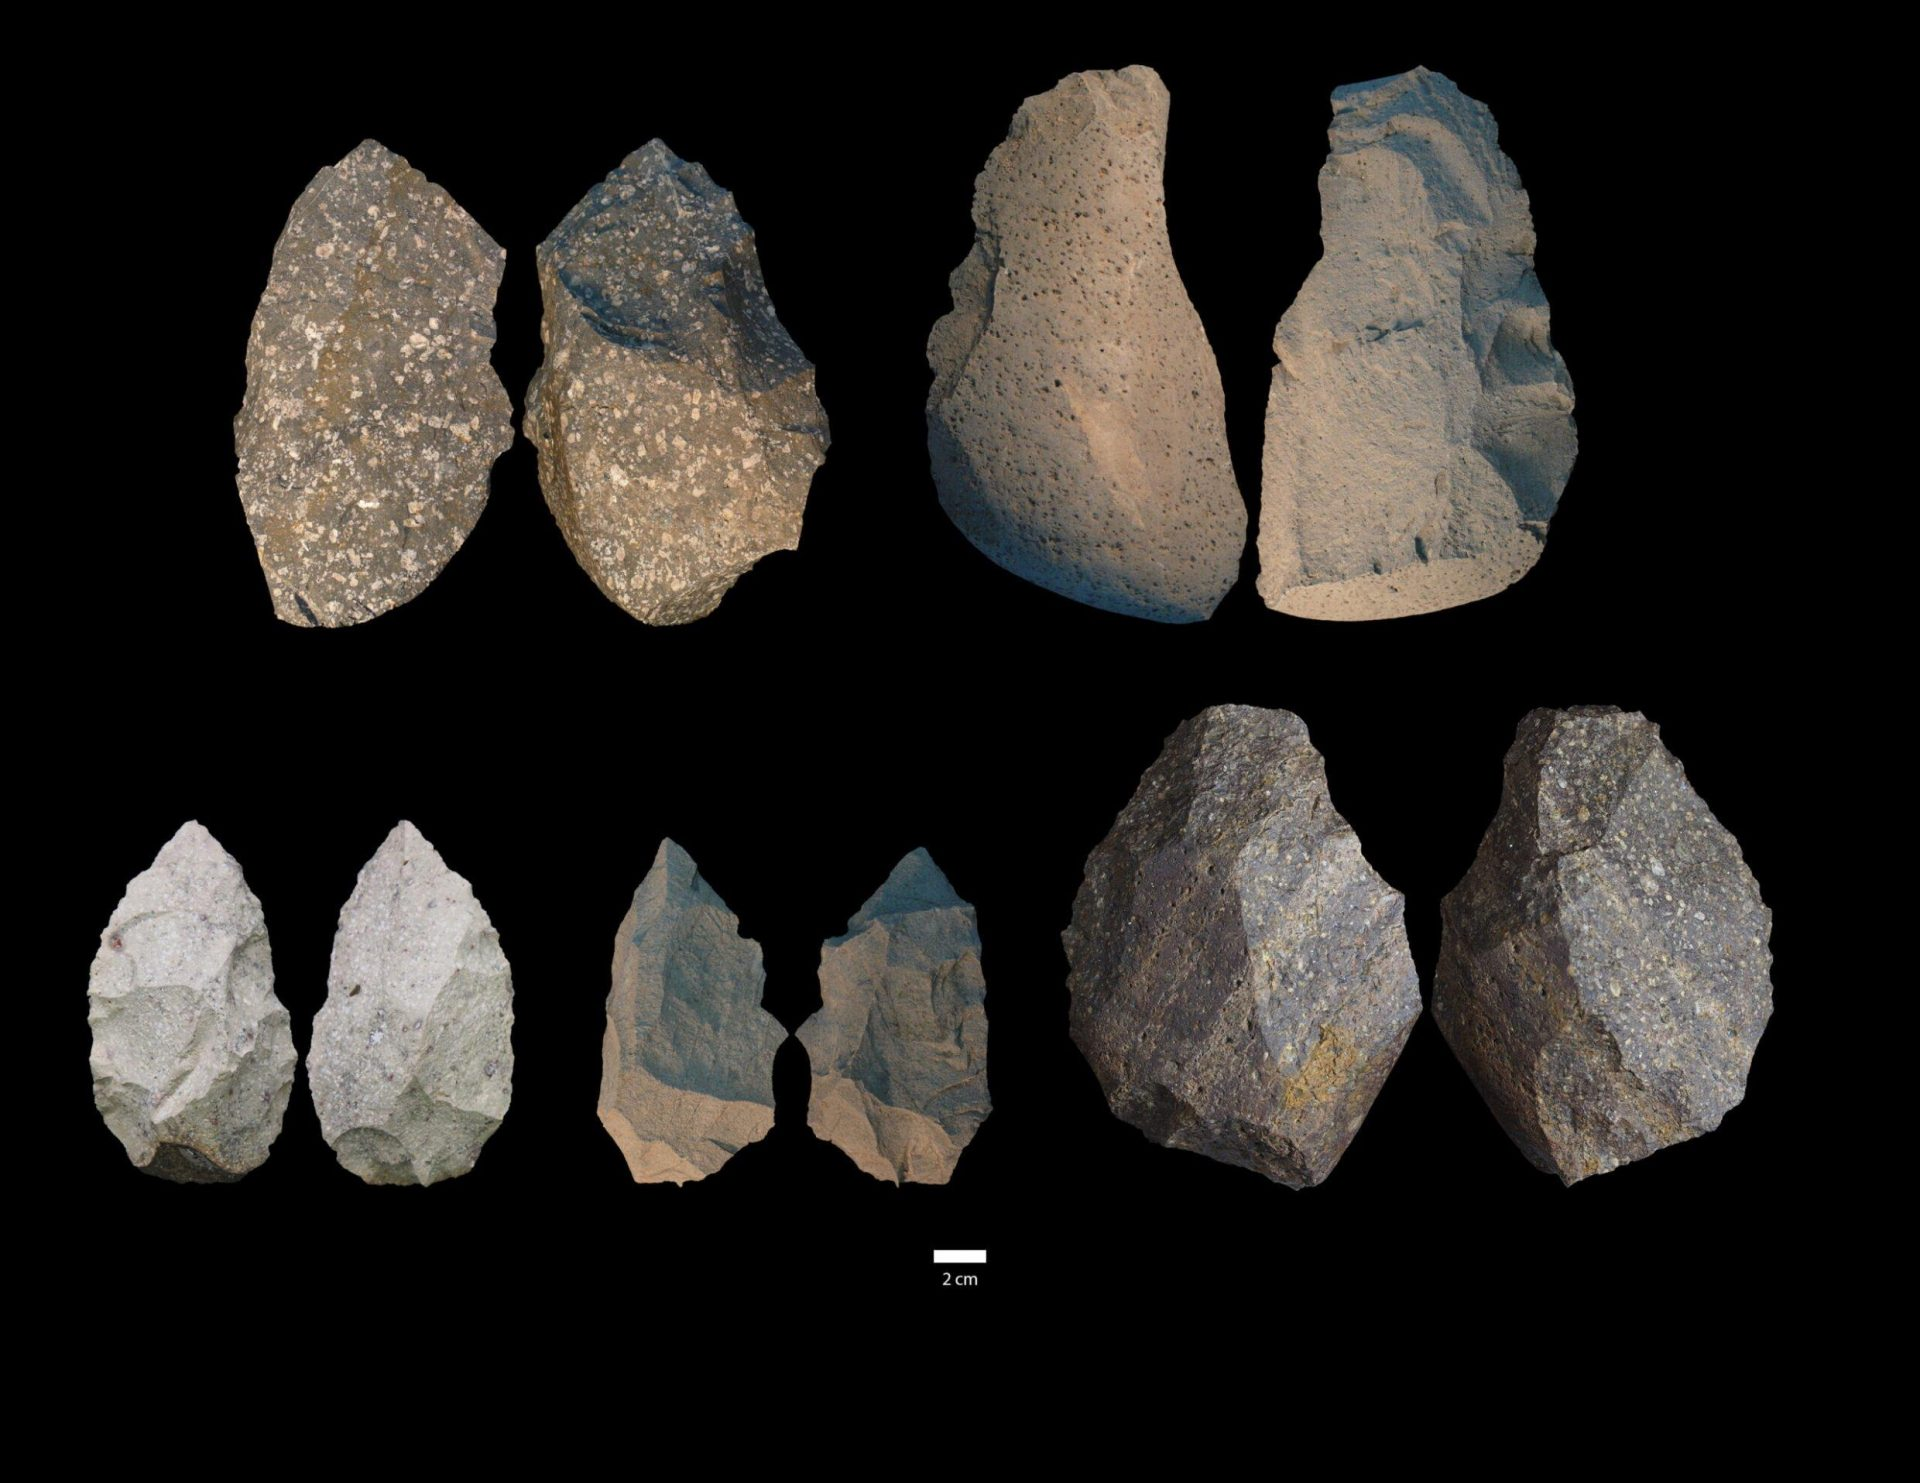 At the Gona study area in Ethiopia's Afar State, H. erectus used locally available stone cobbles to make their tools, which were accessed from nearby riverbeds. (Image: University of Michigan)